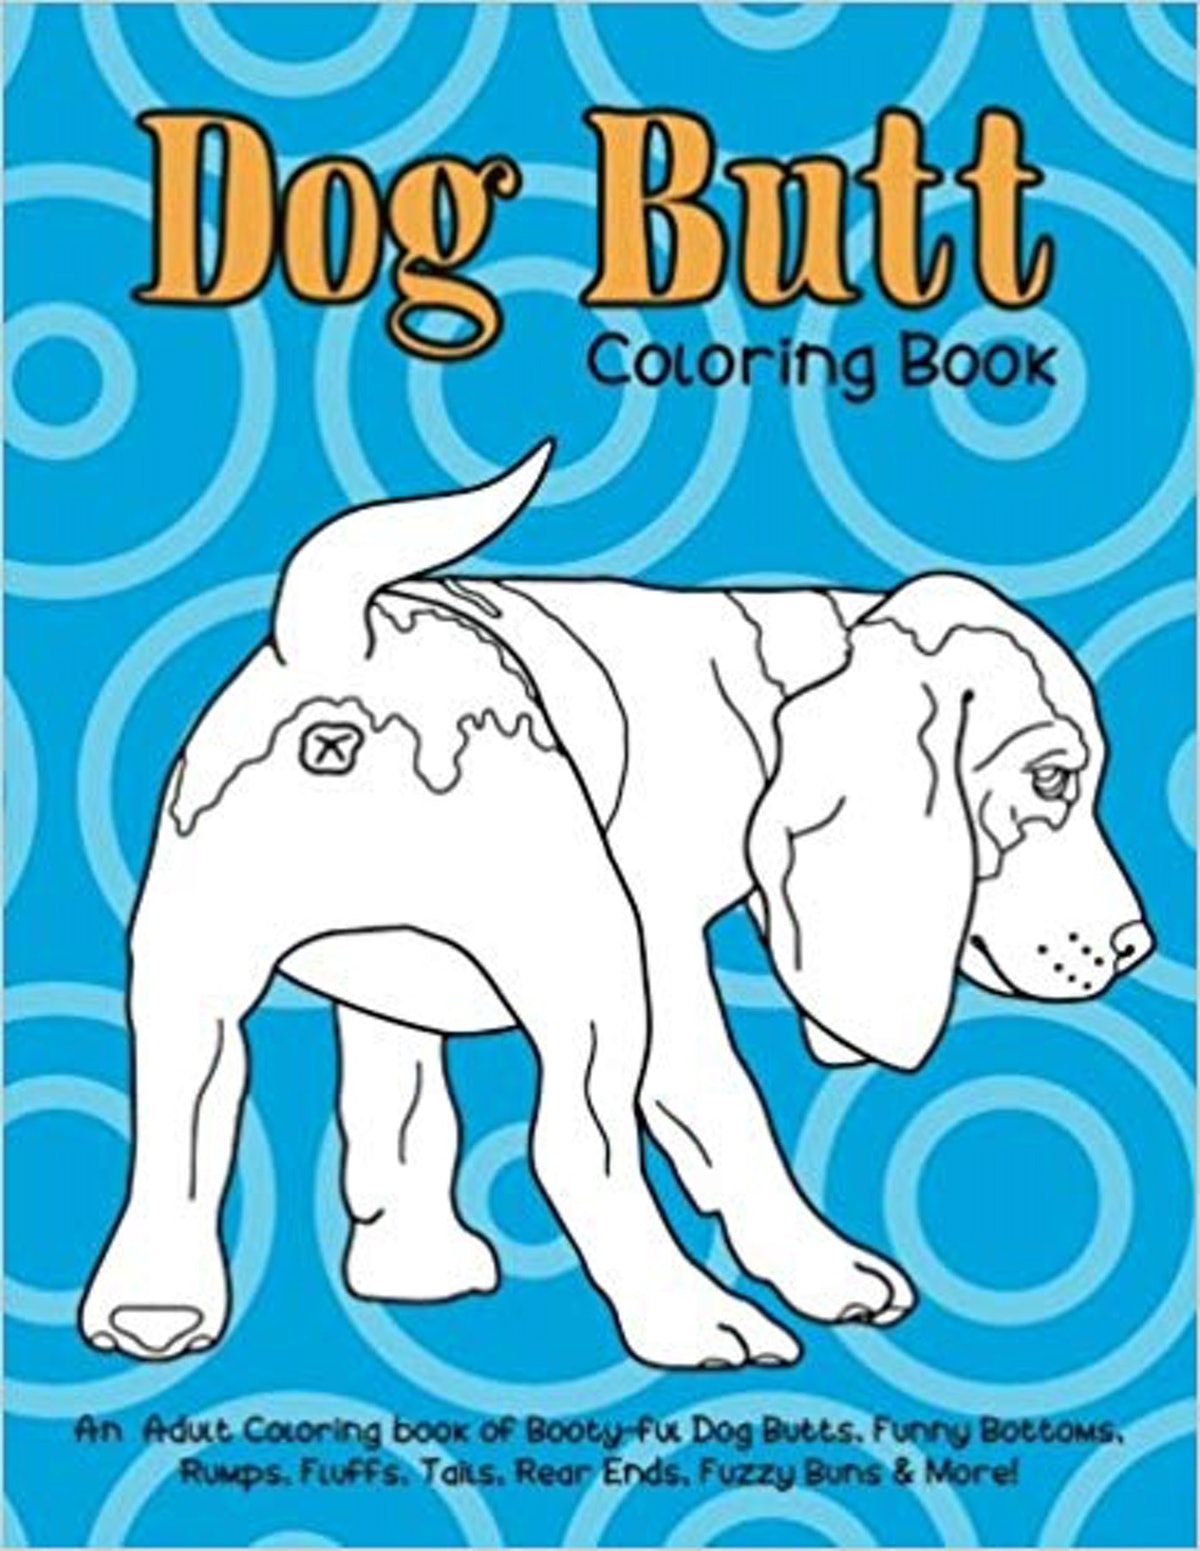 Dog Butt Coloring Book